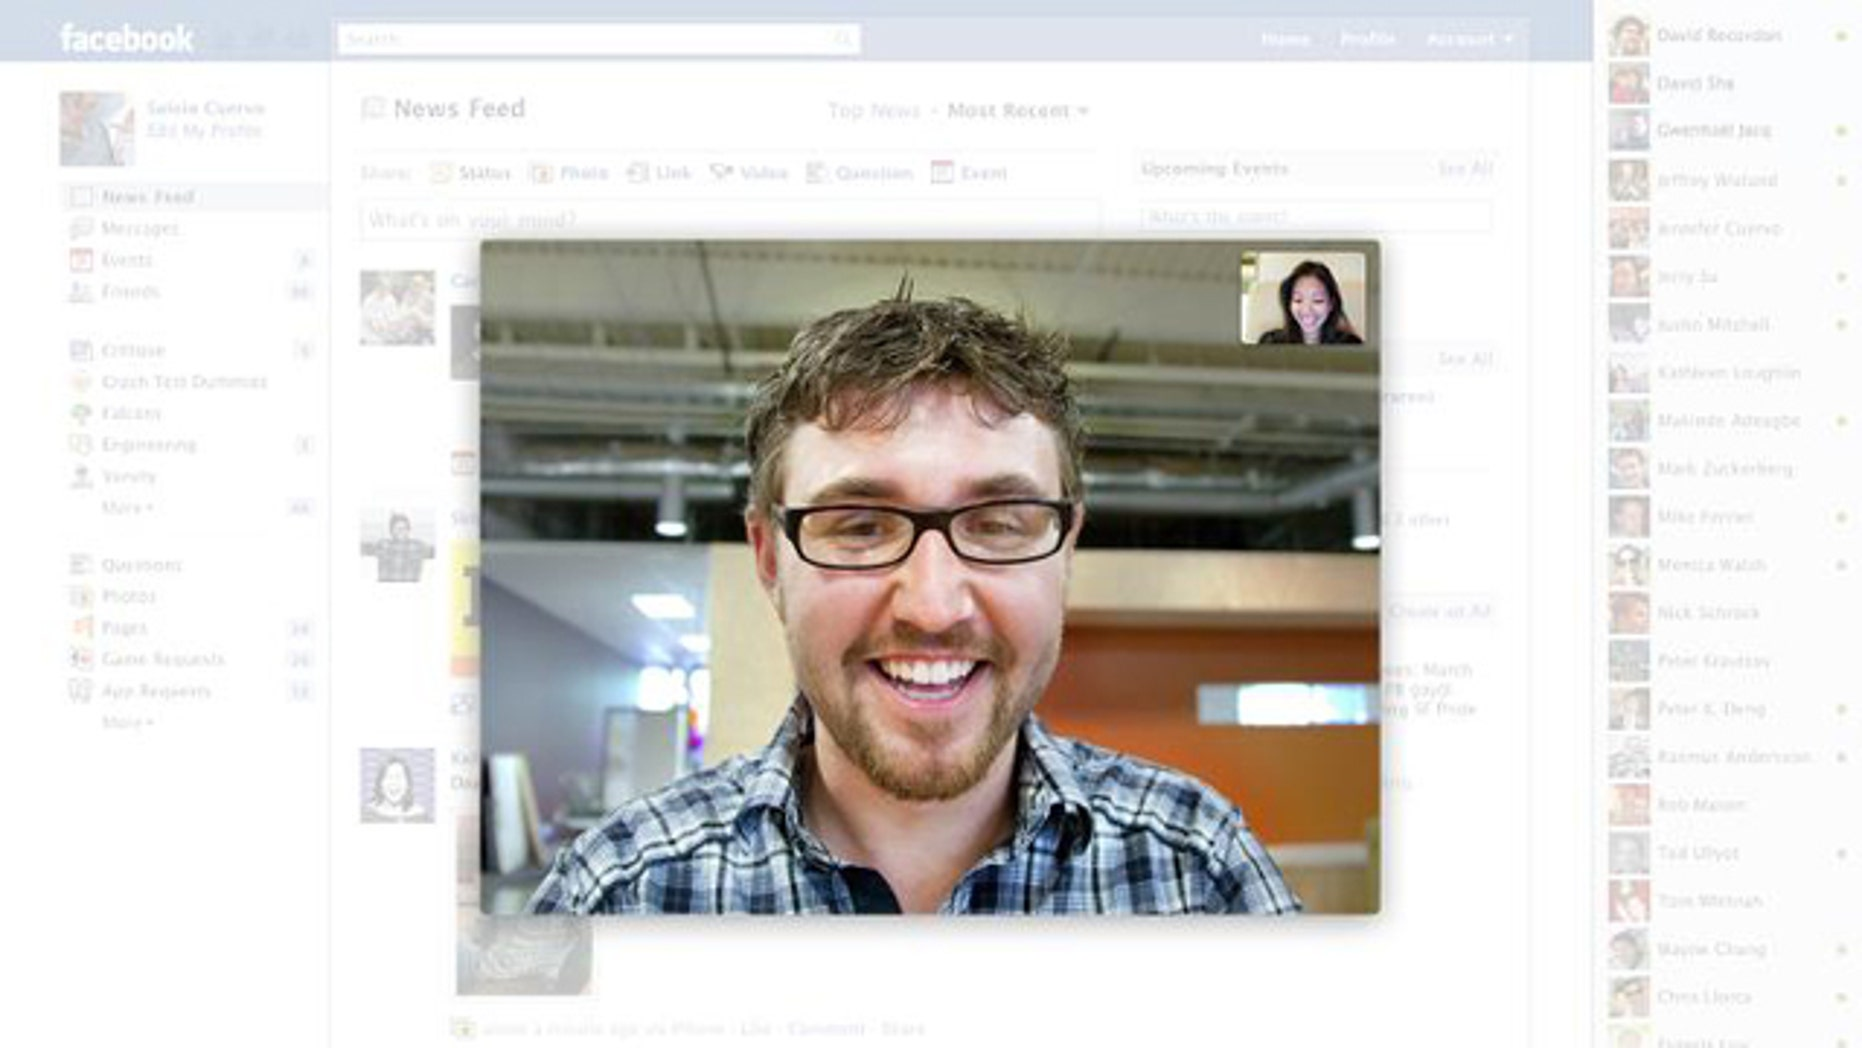 Facebook on Wednesday unveiled face to face video chat, a new feature powered by Internet telephony giant Skype.